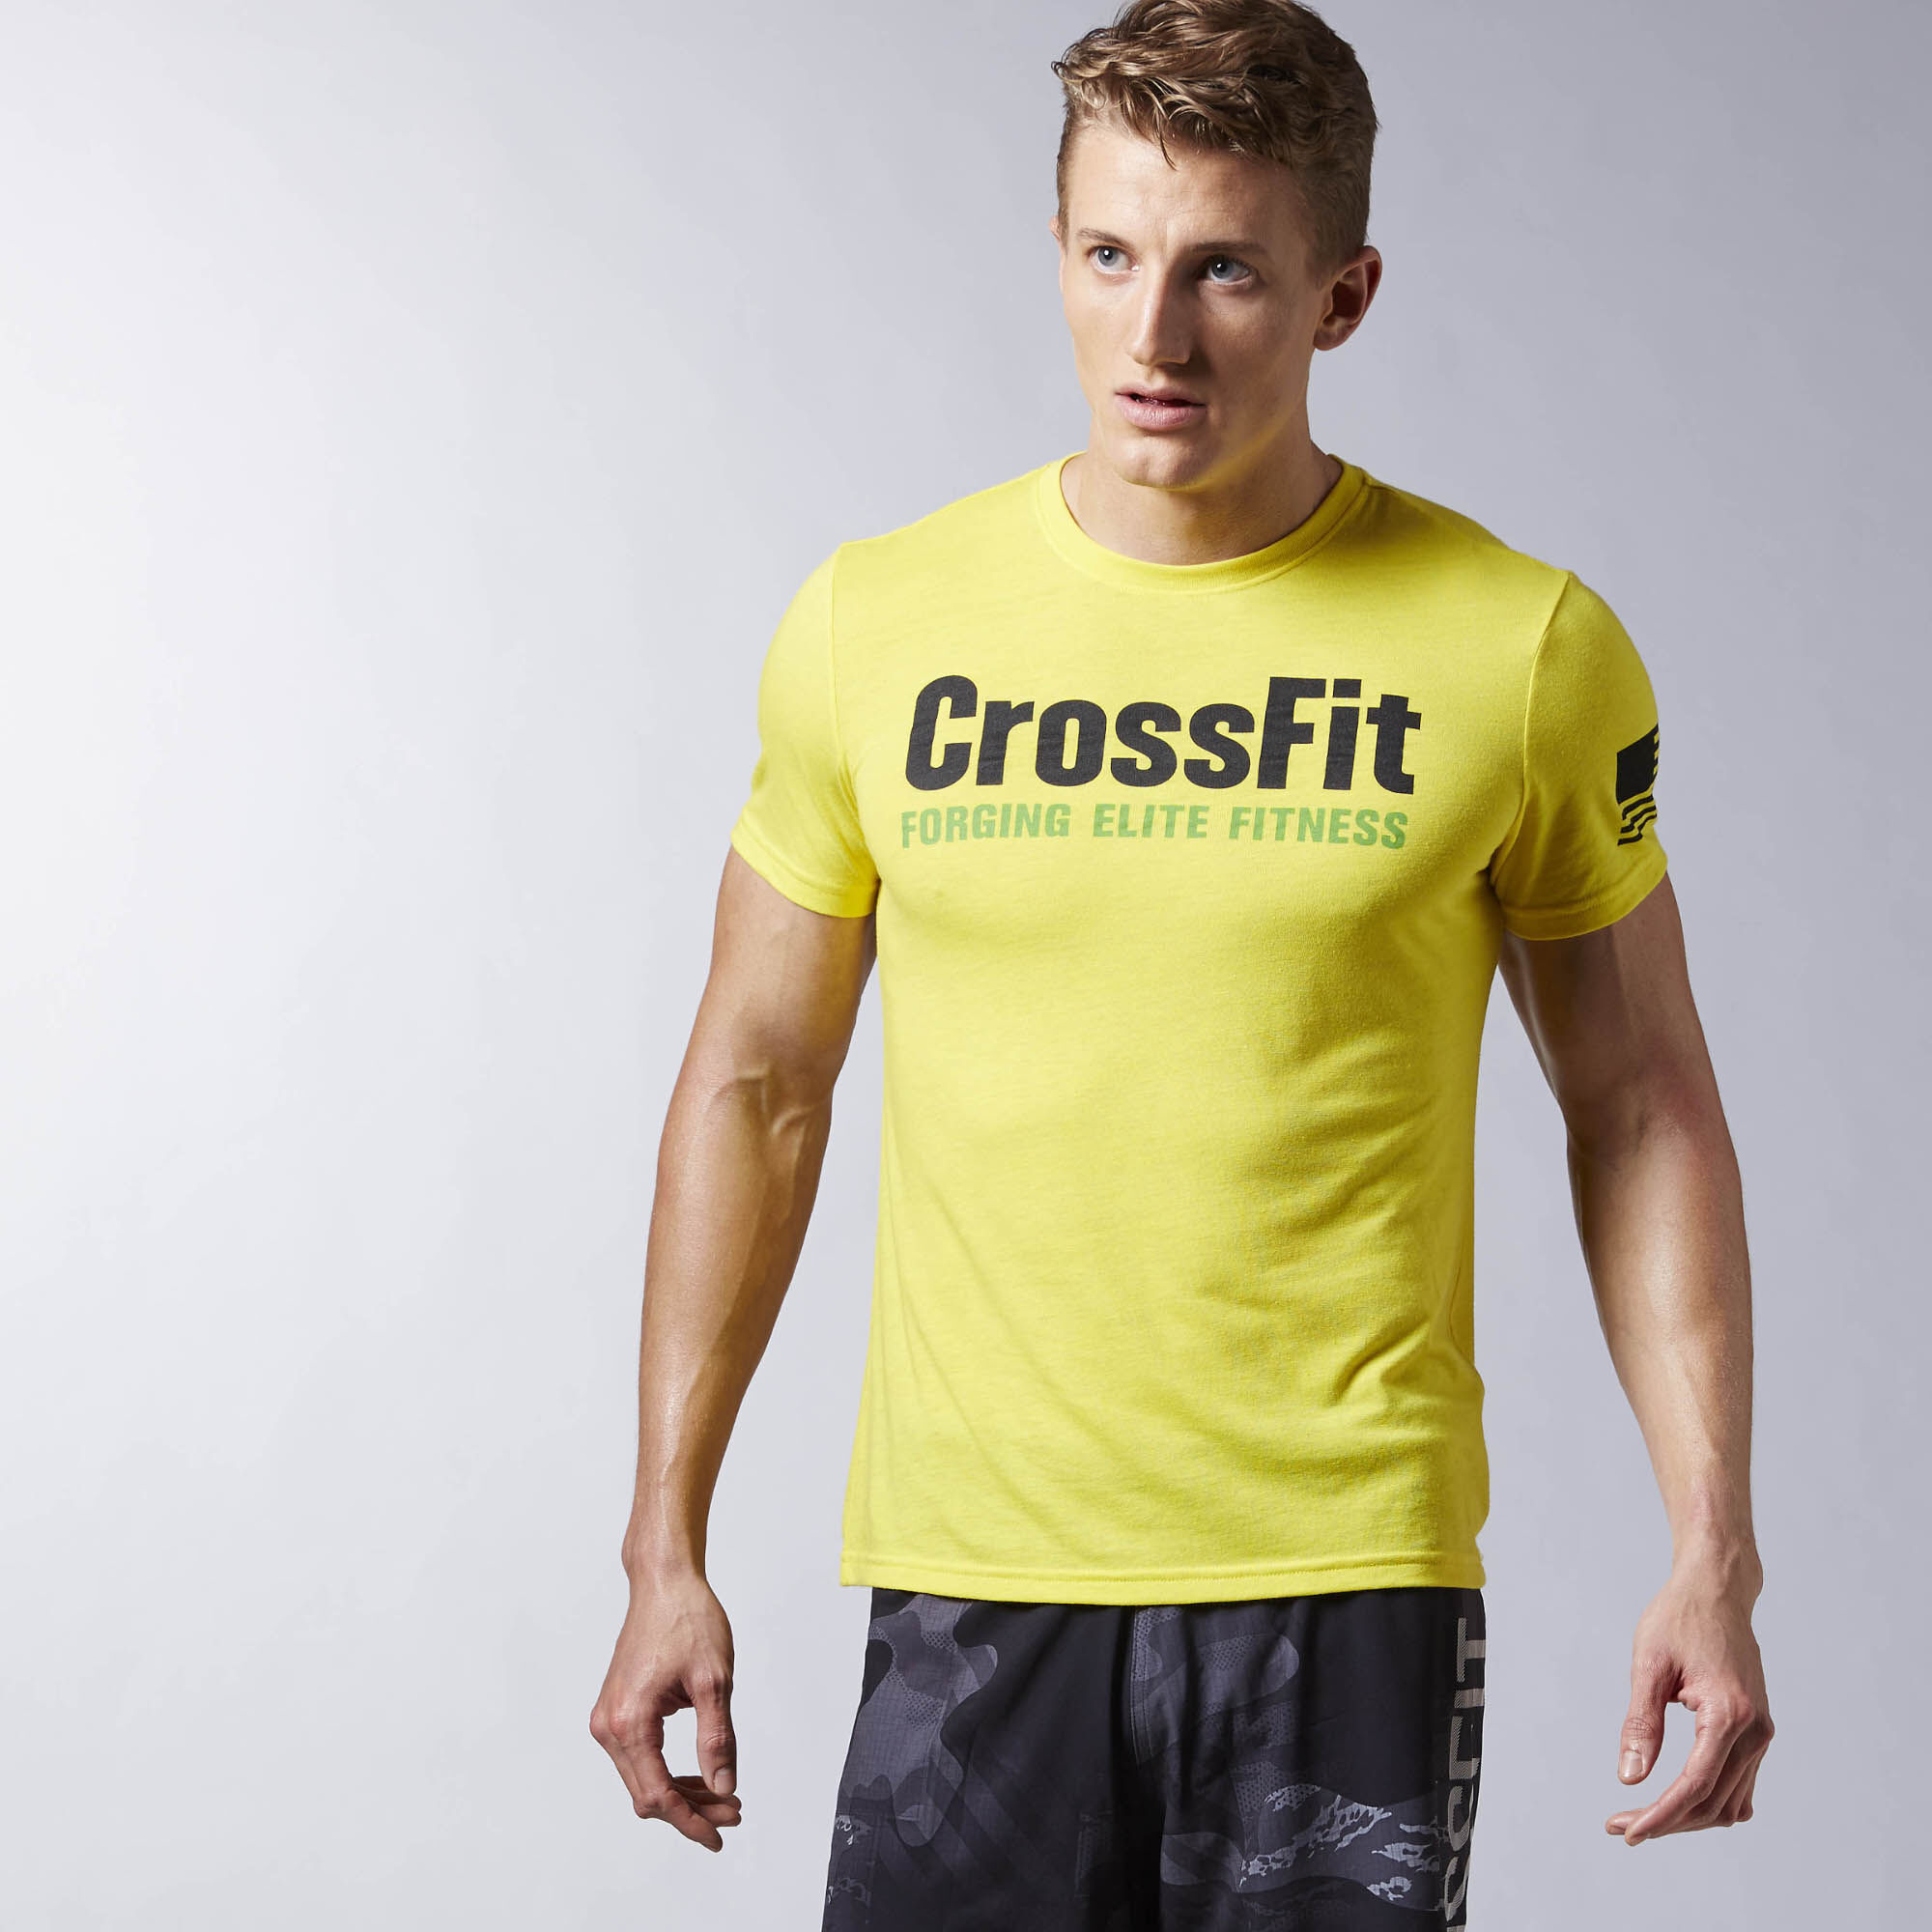 t shirt reebok crossfit forging elite fitness. Black Bedroom Furniture Sets. Home Design Ideas